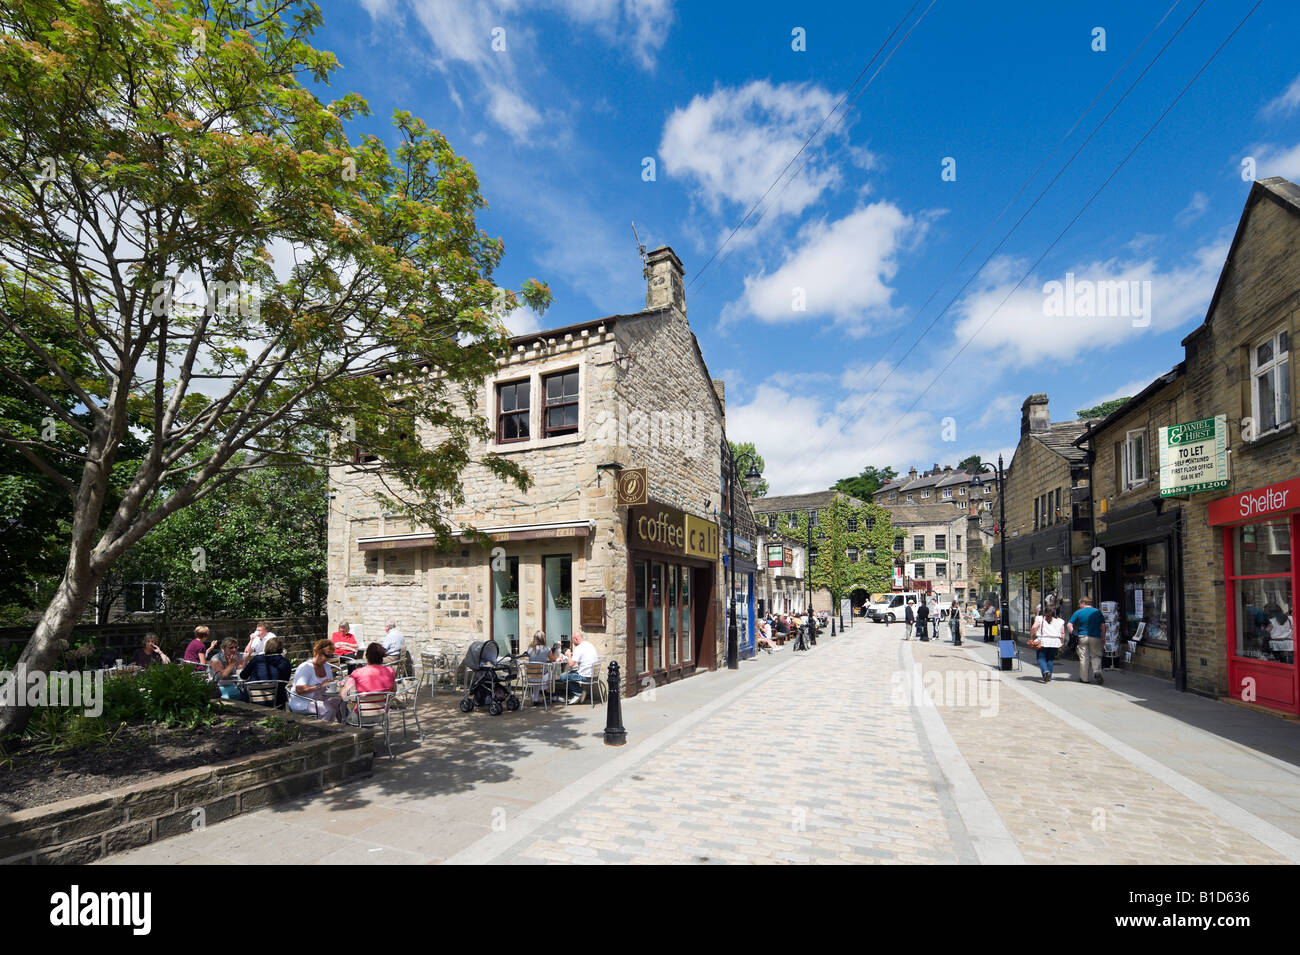 Pavement cafe on Bridge Gate, Town Centre, Hebden Bridge, Calder Valley, West Yorkshire, England, United Kingdom - Stock Image